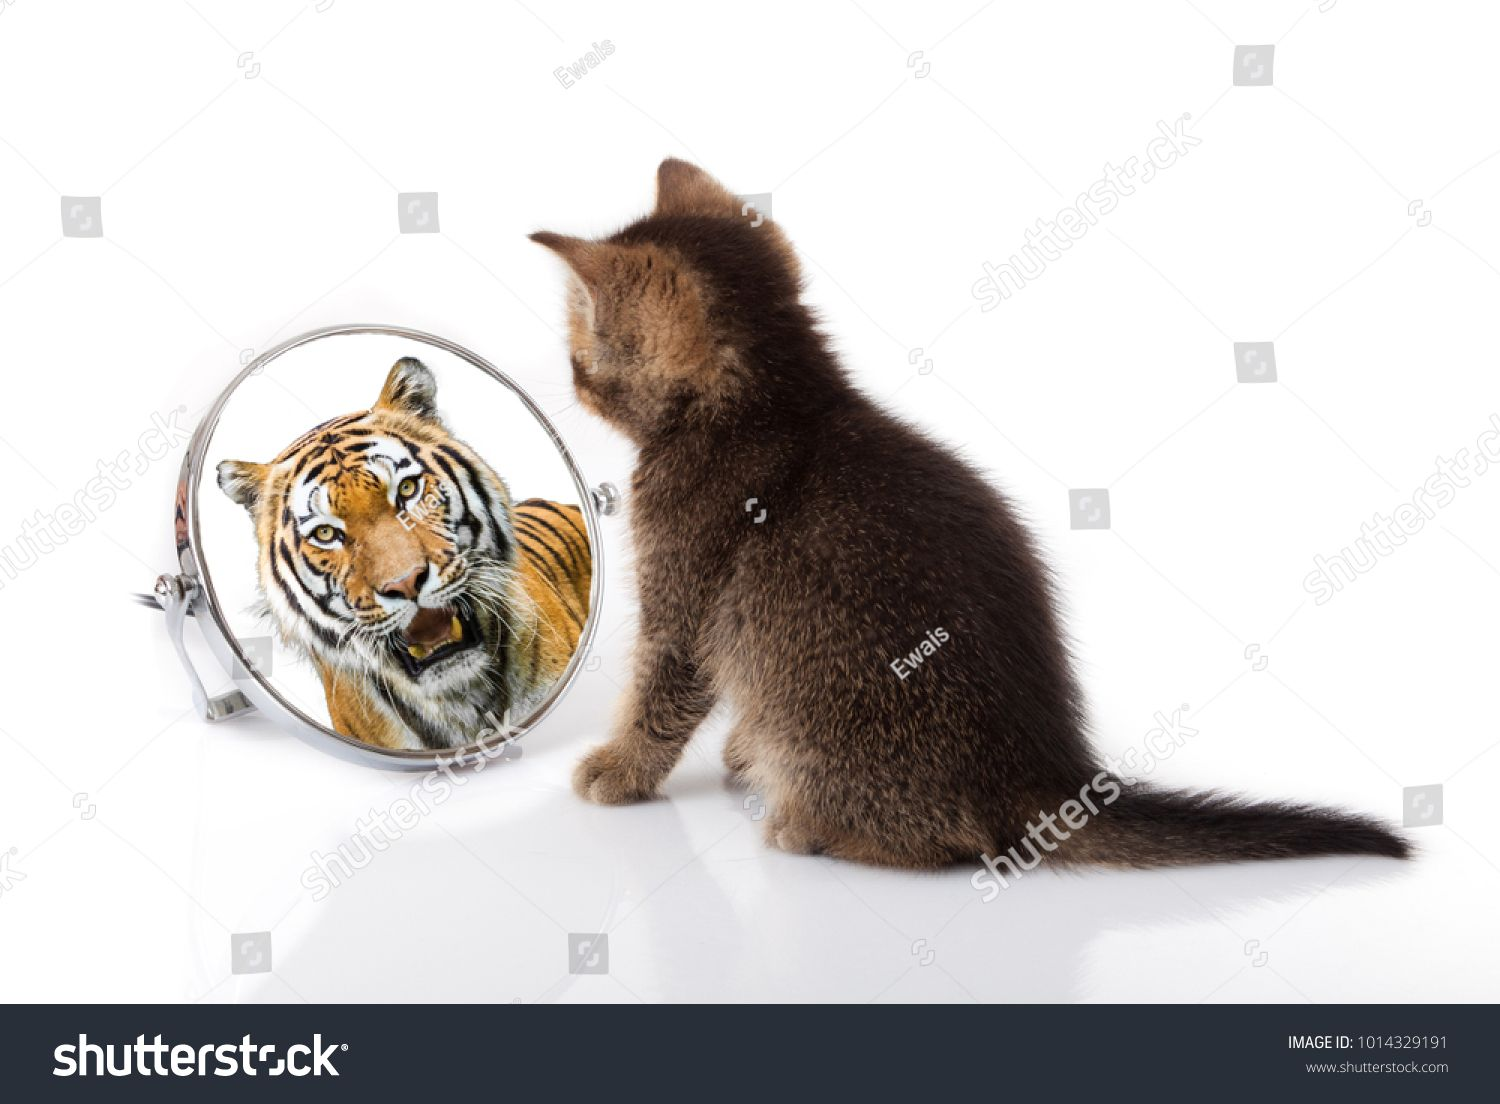 Kitten With Mirror On White Background Kitten Looks In A Mirror Reflection Of A Tigerwhite Mirror Kitten Tiger Tiger Images Kittens Mirror Reflection